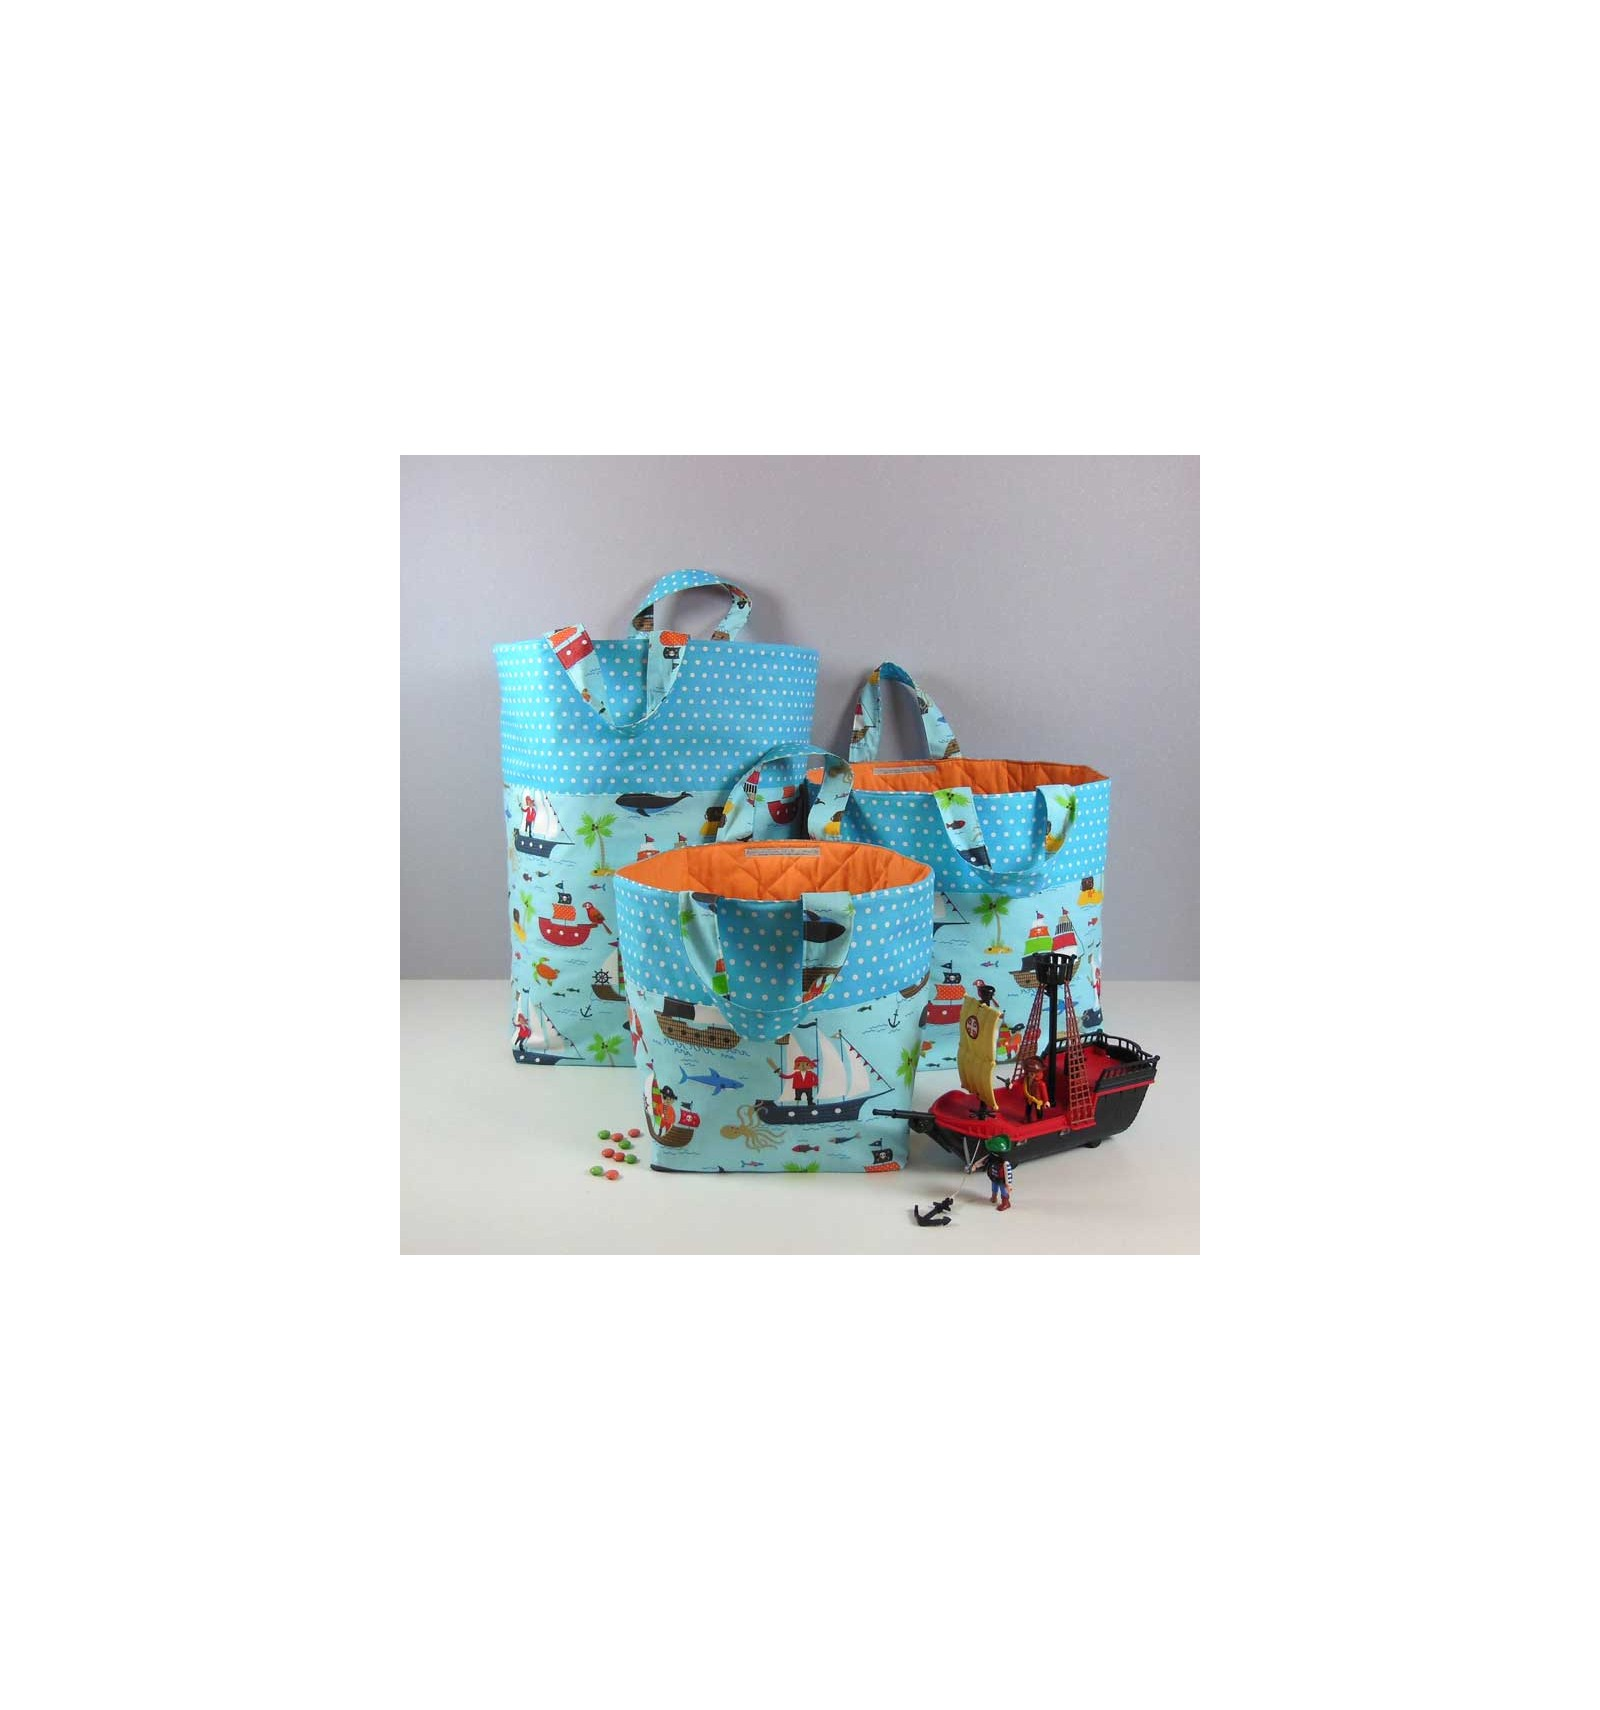 grand coffre jouets bleu sac enfant personnalis pirate cr aflo. Black Bedroom Furniture Sets. Home Design Ideas